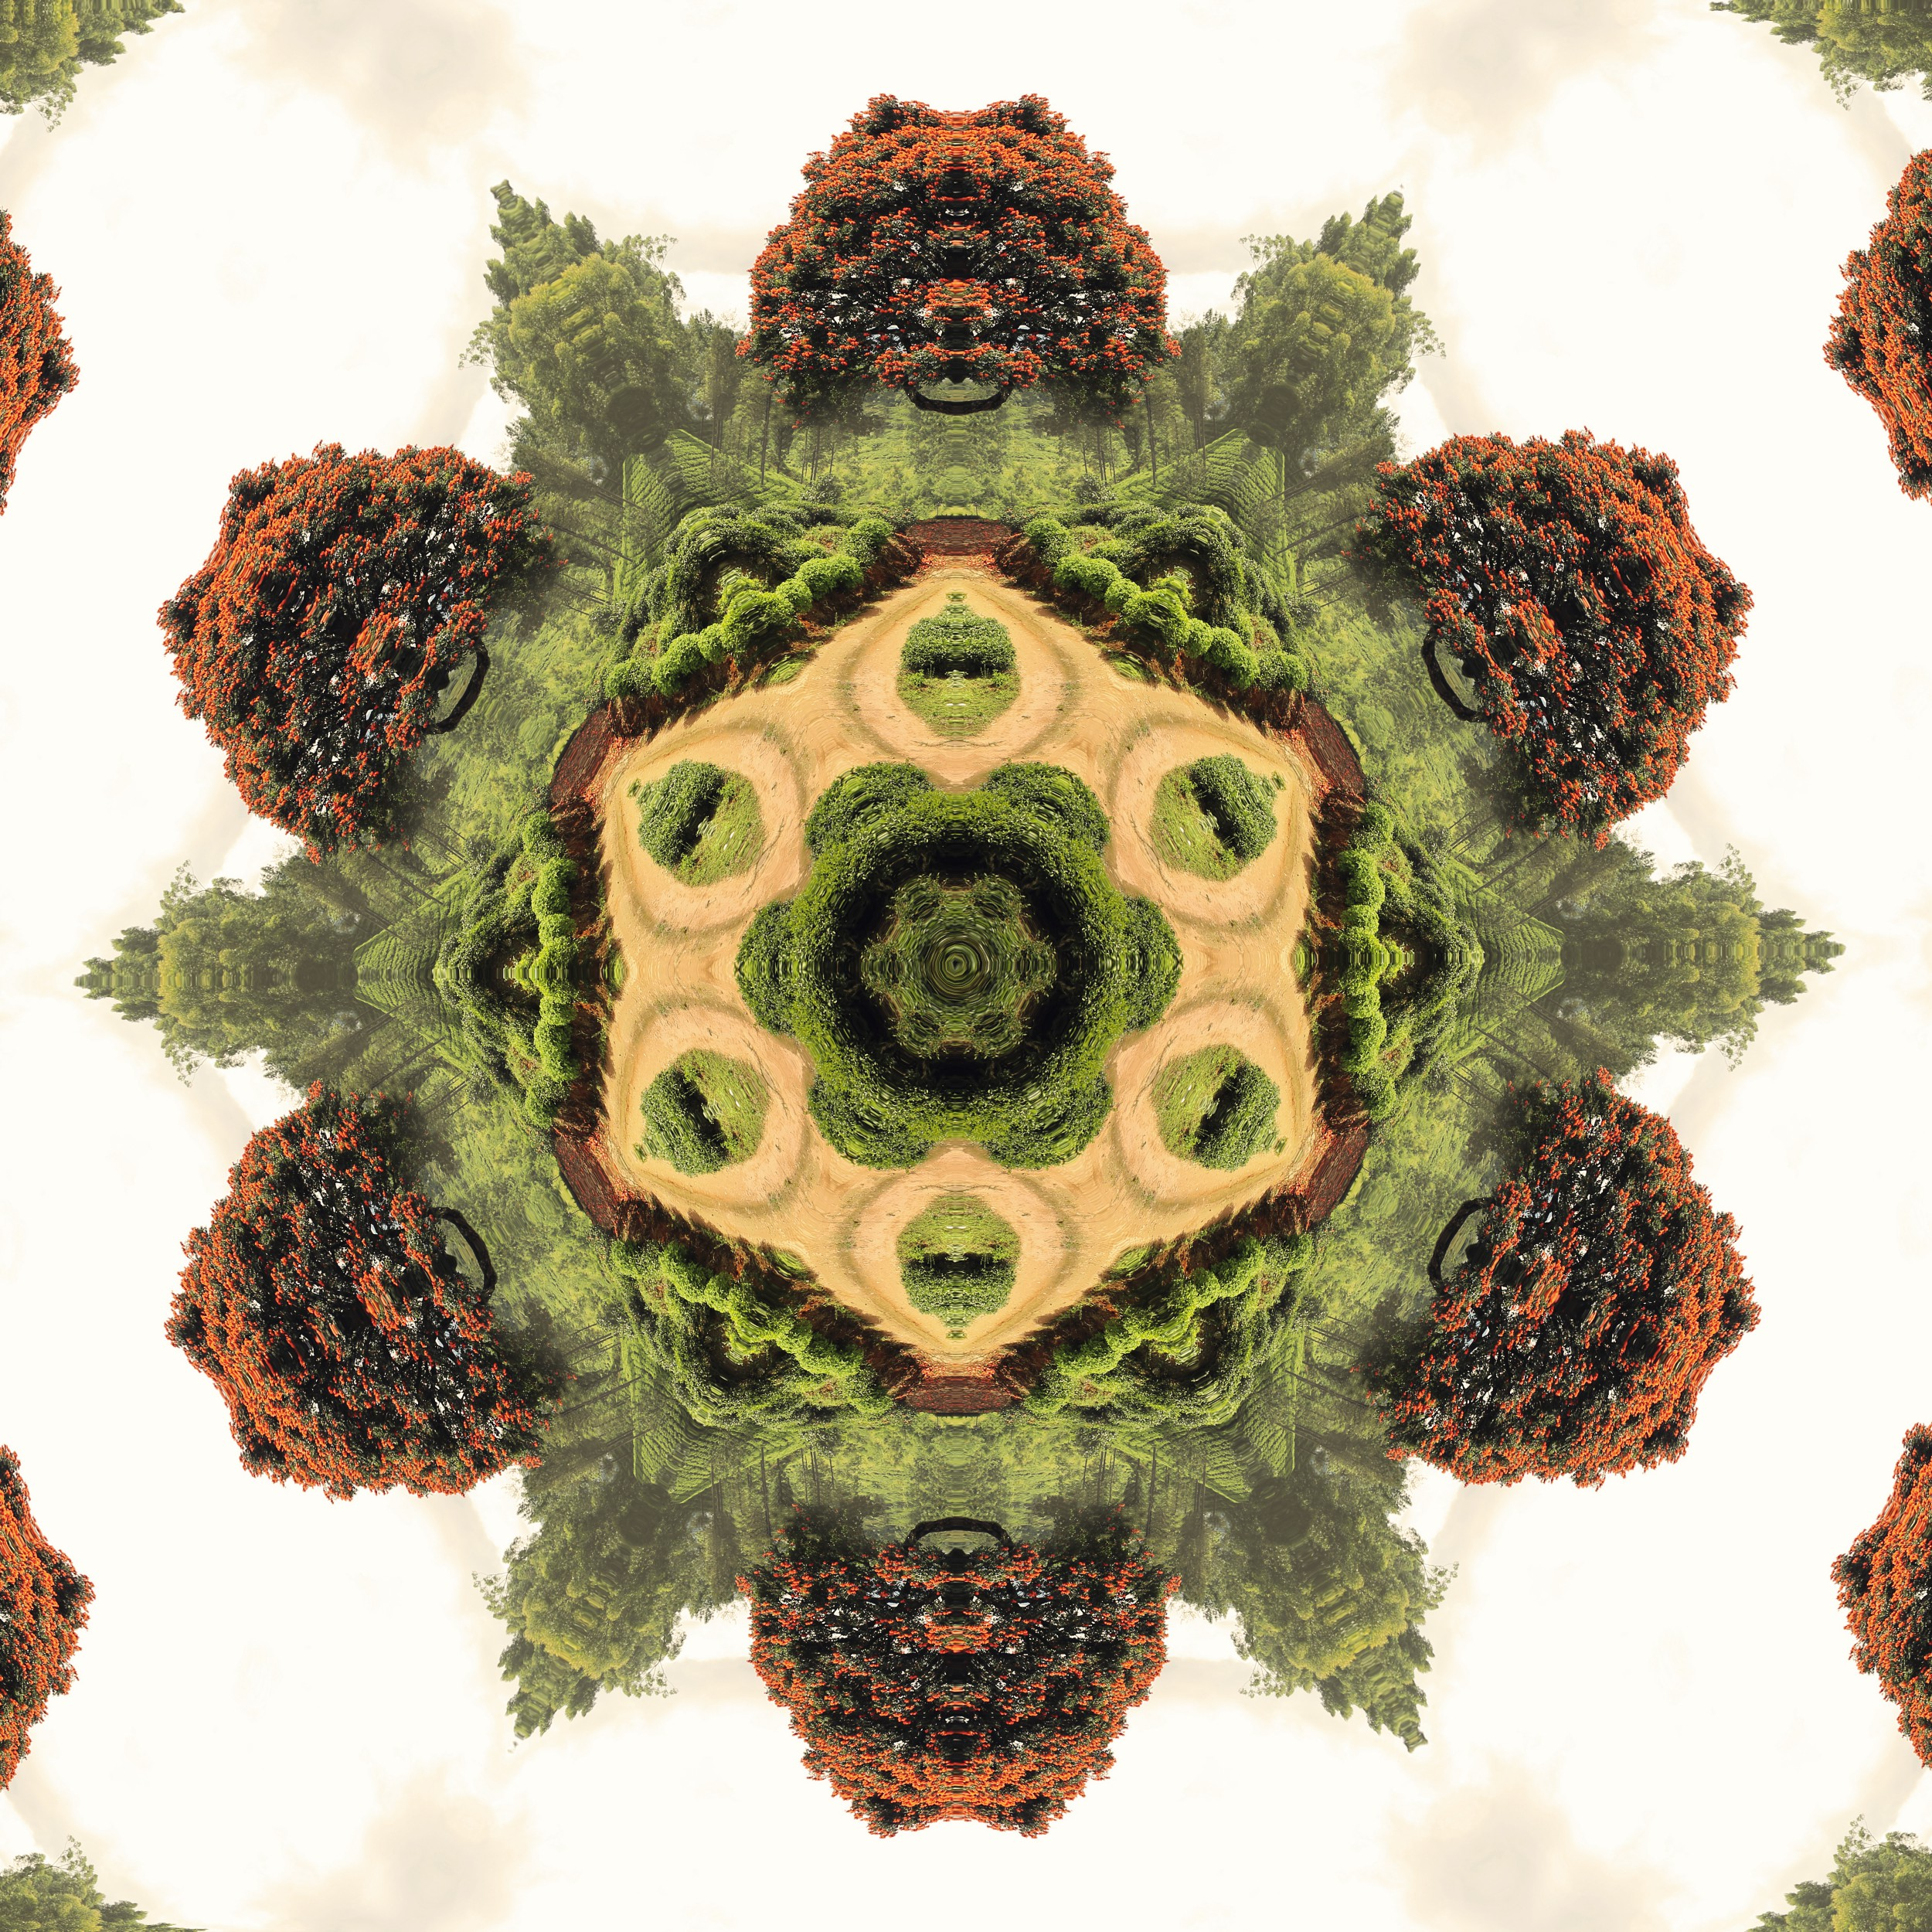 Create a magical kaleidoscopic image out of an ordinary photo